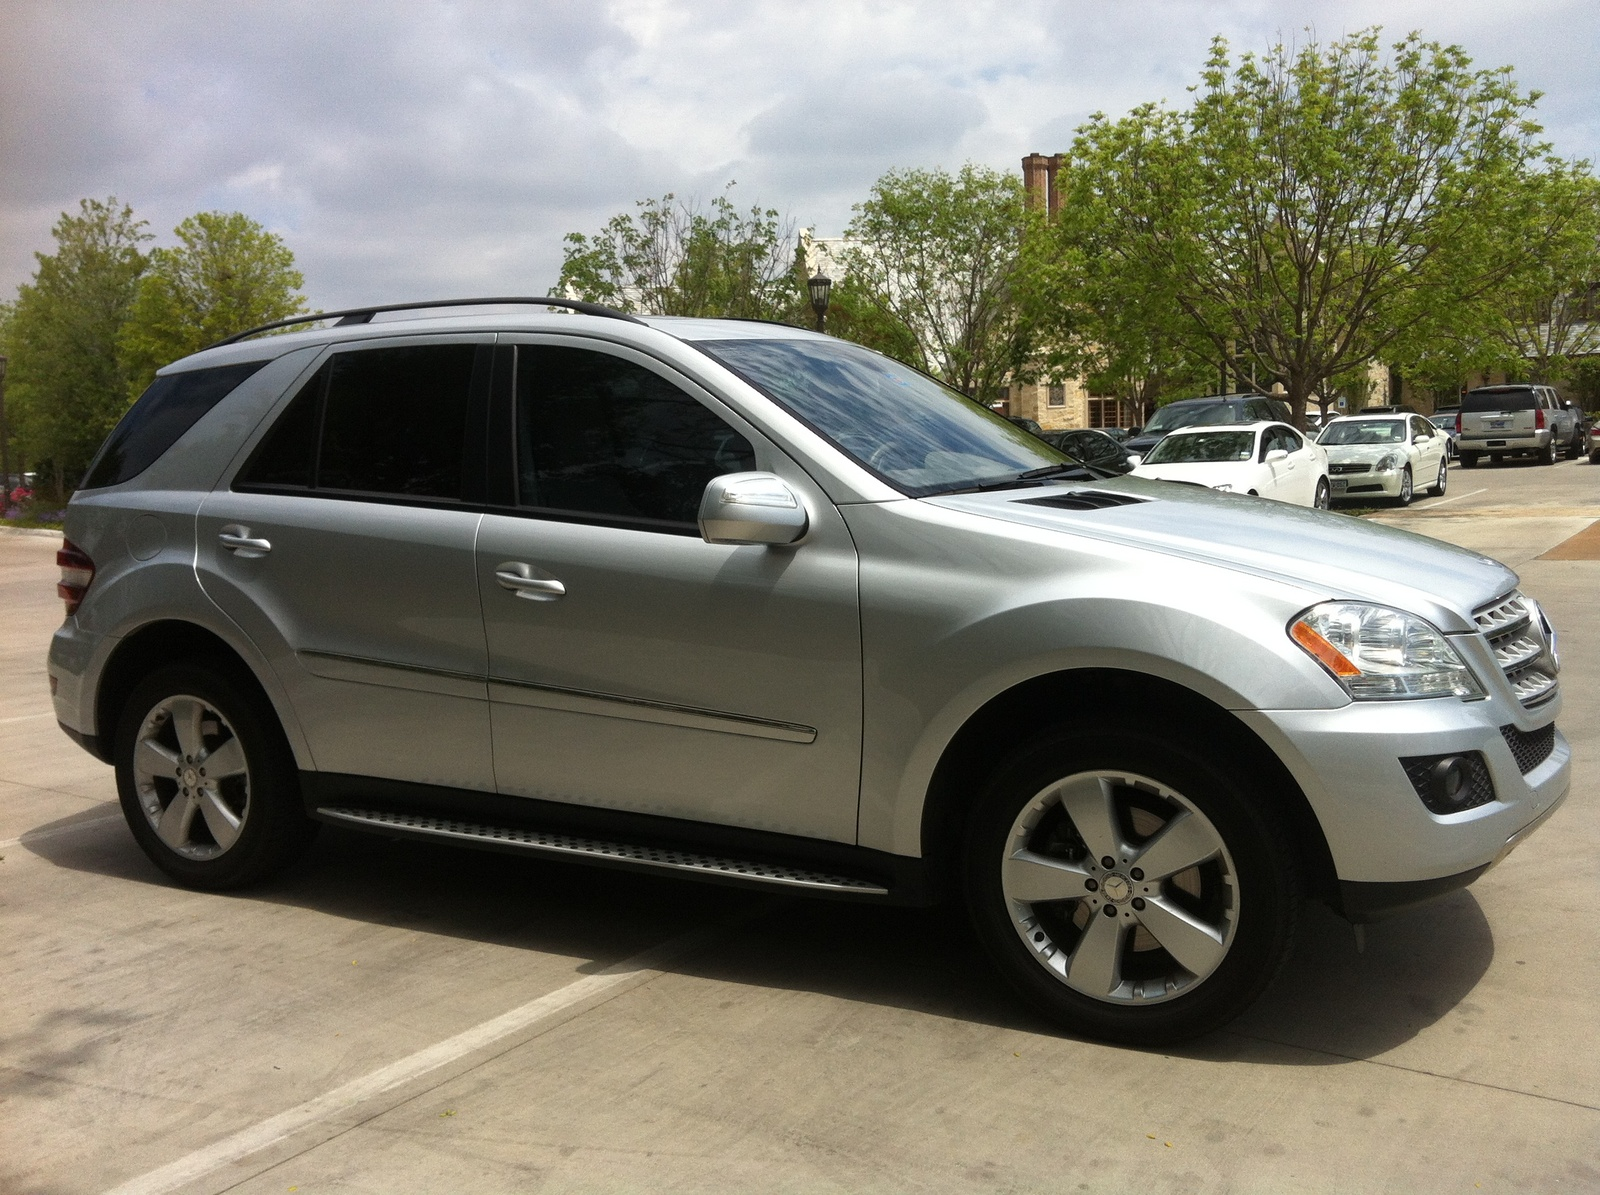 2009 mercedes benz m class pictures cargurus for 2009 mercedes benz ml350 price